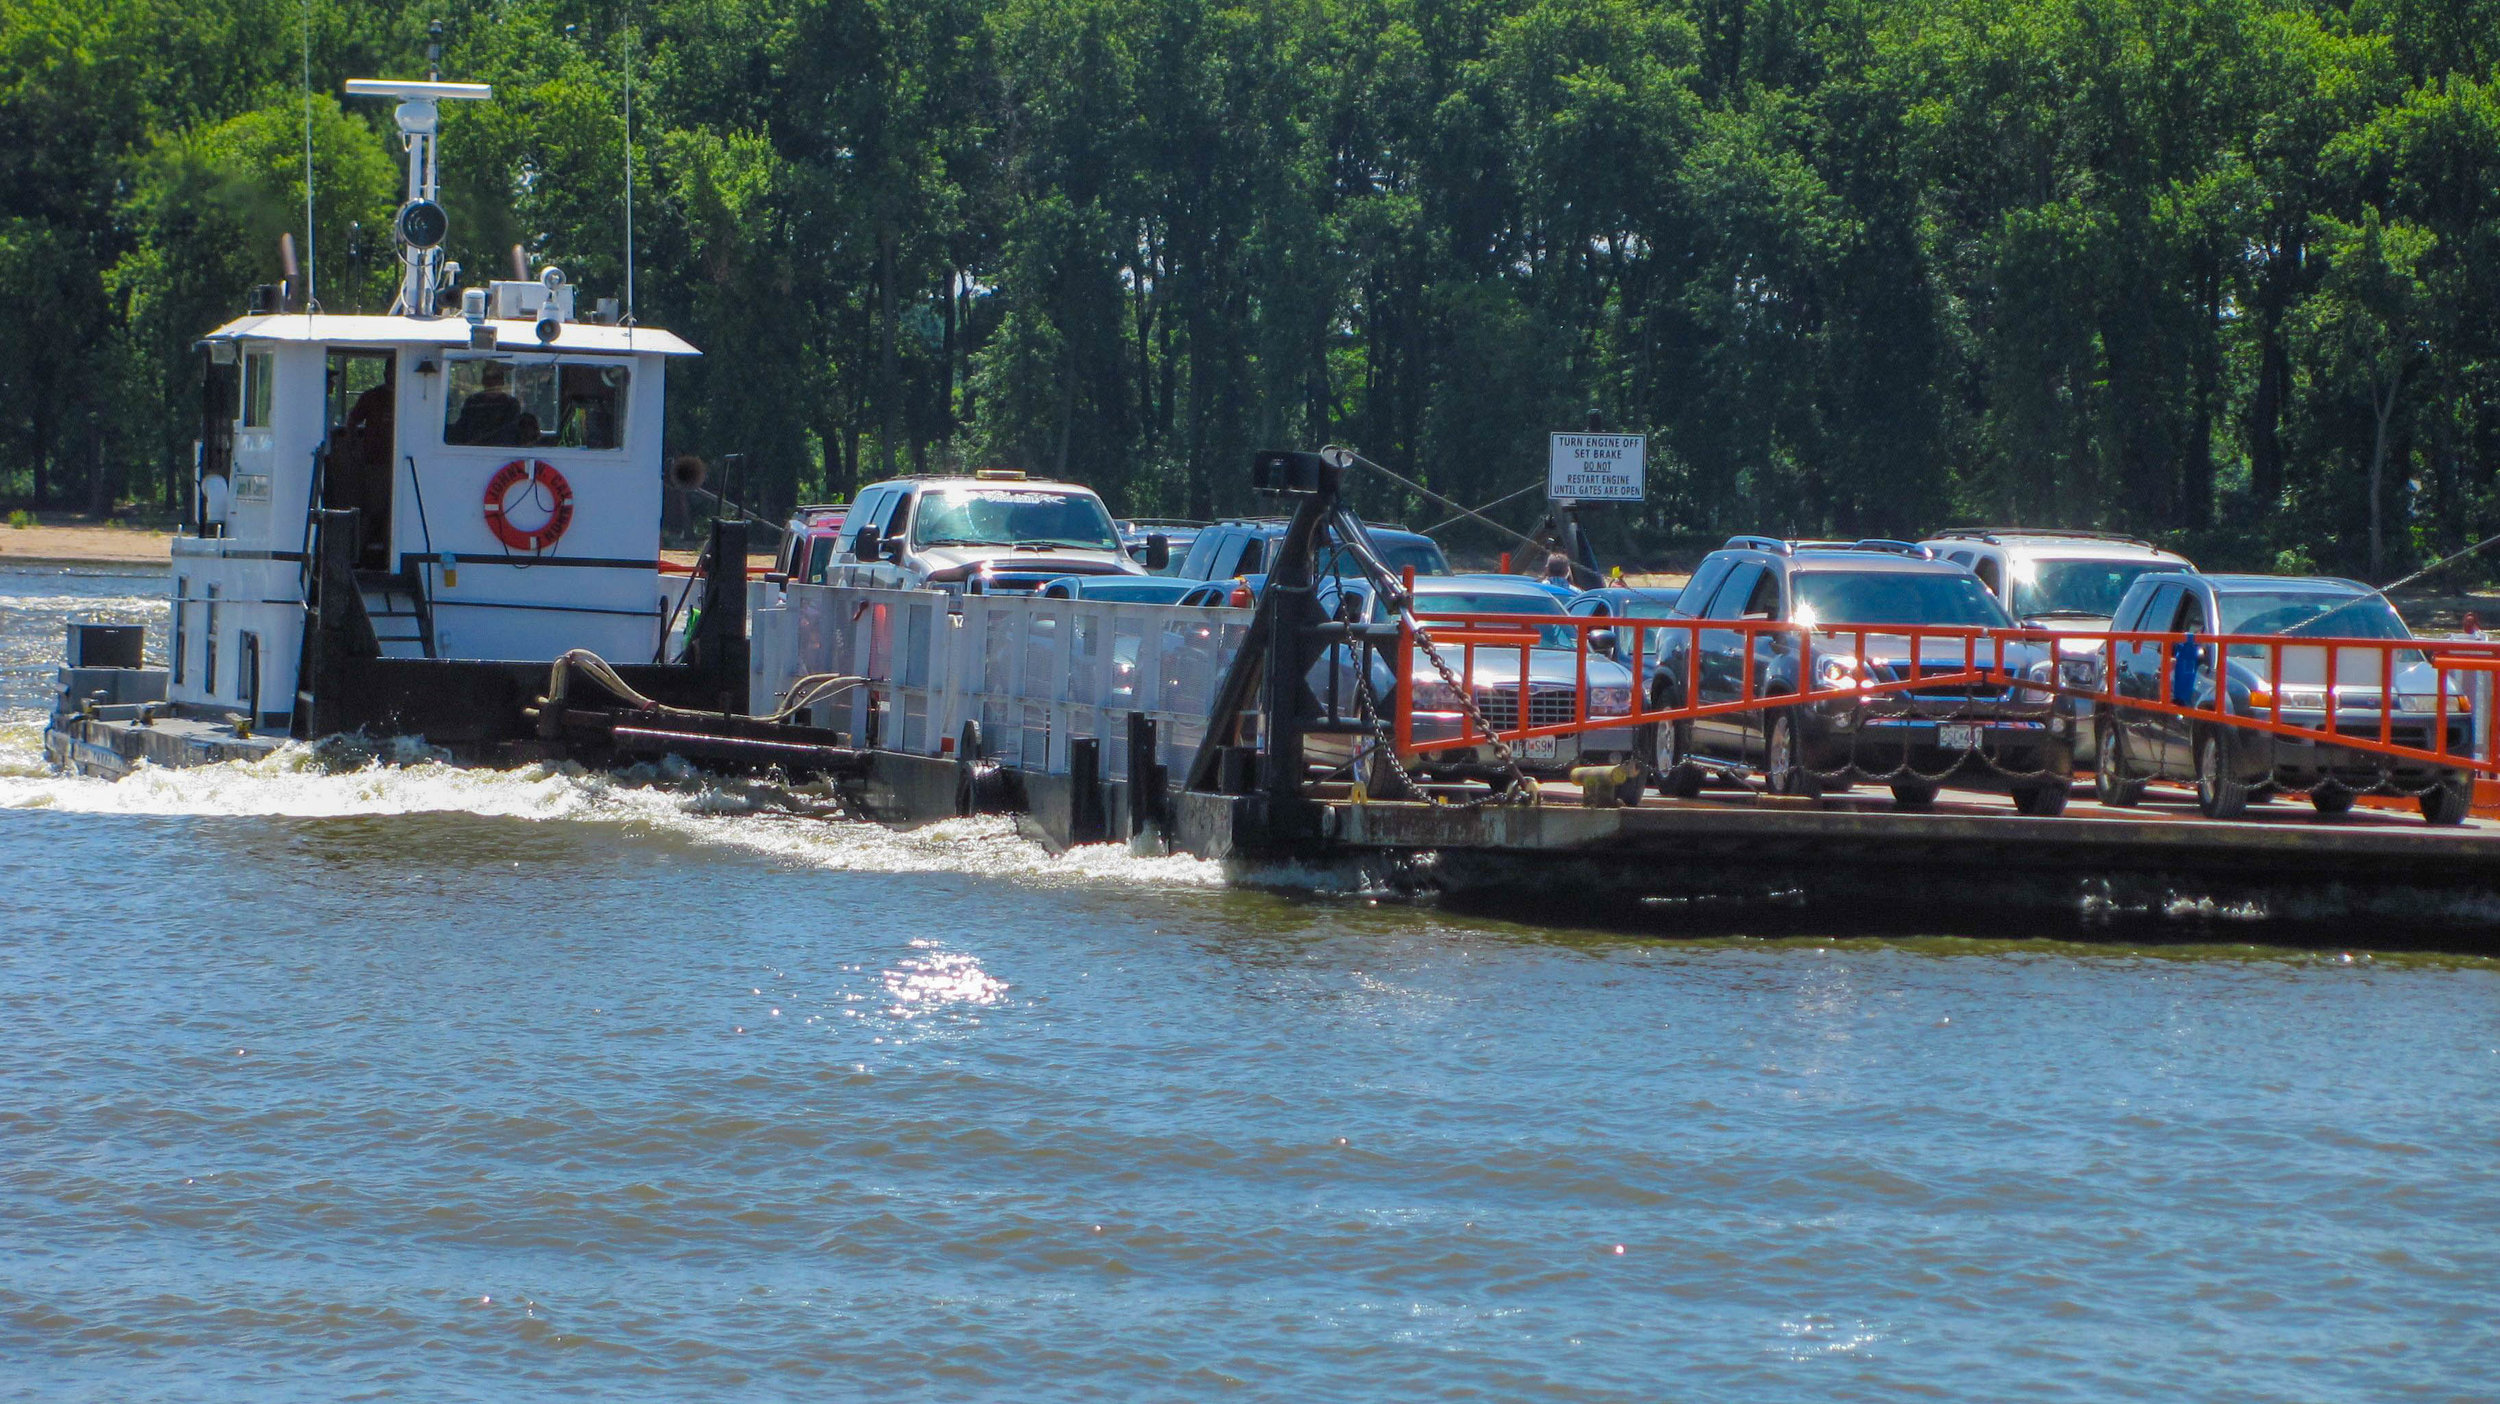 The Grafton Ferry crossing the Illinois Rivers